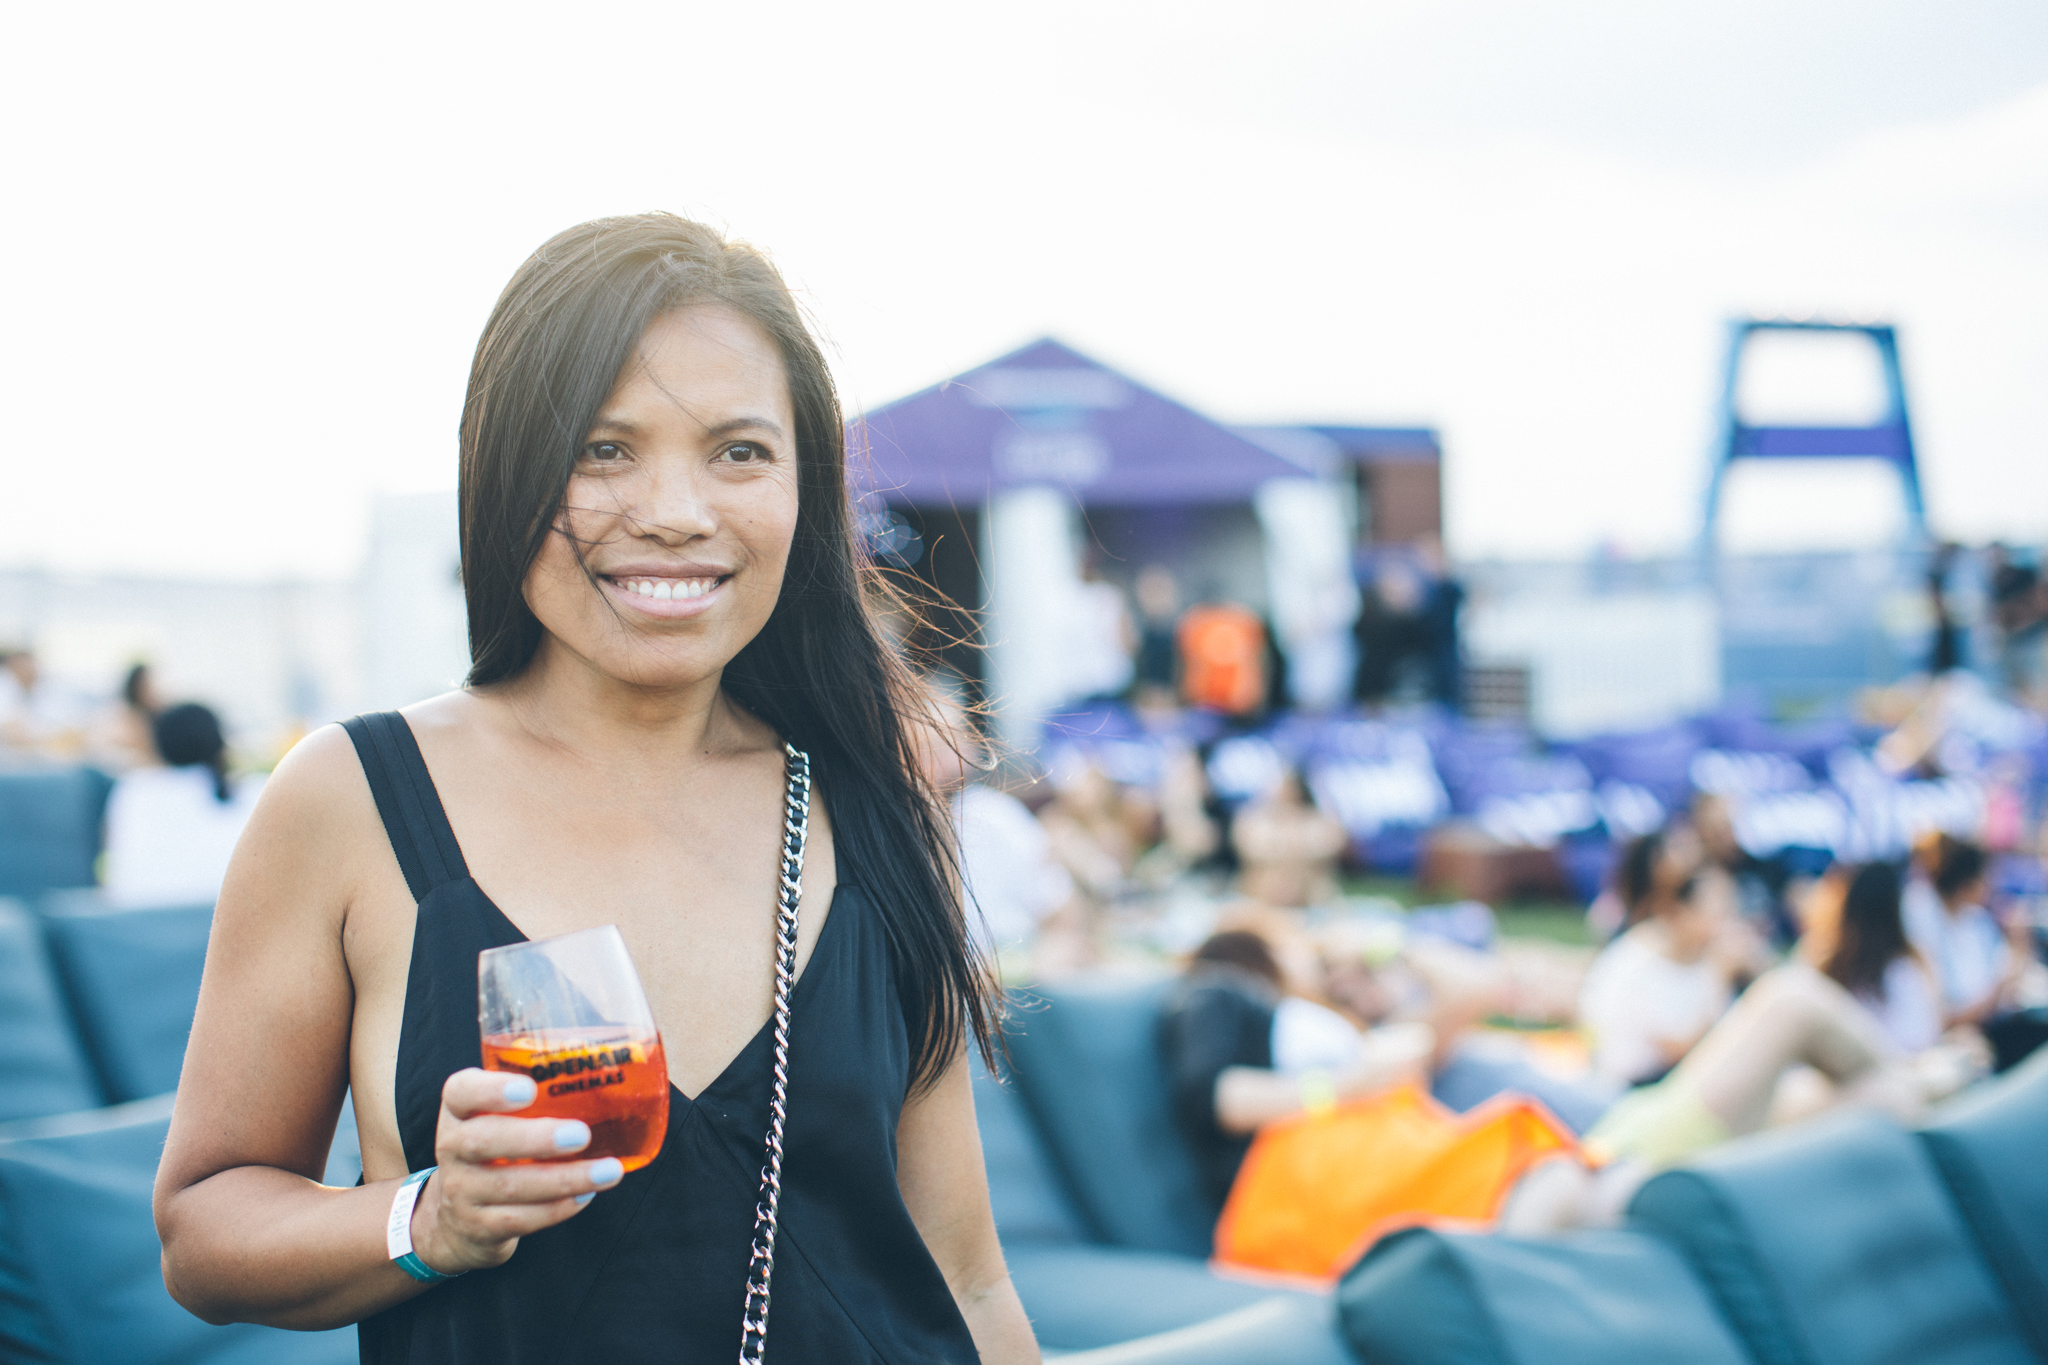 aperol spritz at outdoor openair cinema under the stars